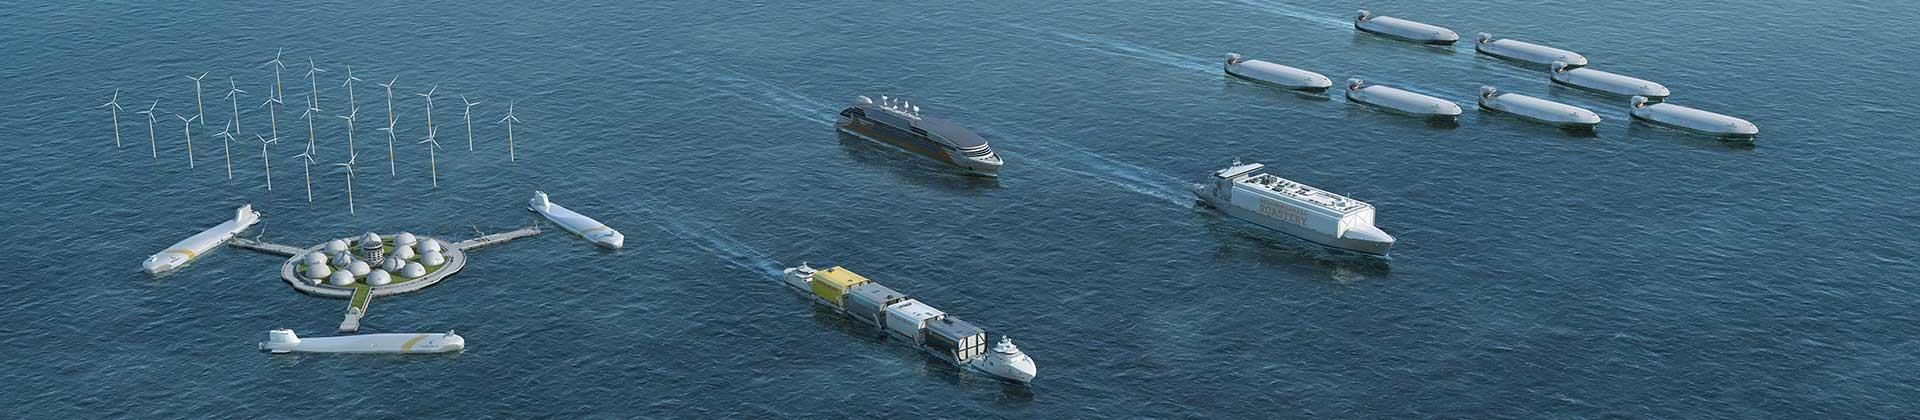 Wrtsil Enabling Sustainable Societies With Smart Technology The Little Things She Needs Malmo Navy White Tsn0001342nw52 38 Is A Global Leader In Complete Lifecycle Power Solutions For Marine And Energy Markets